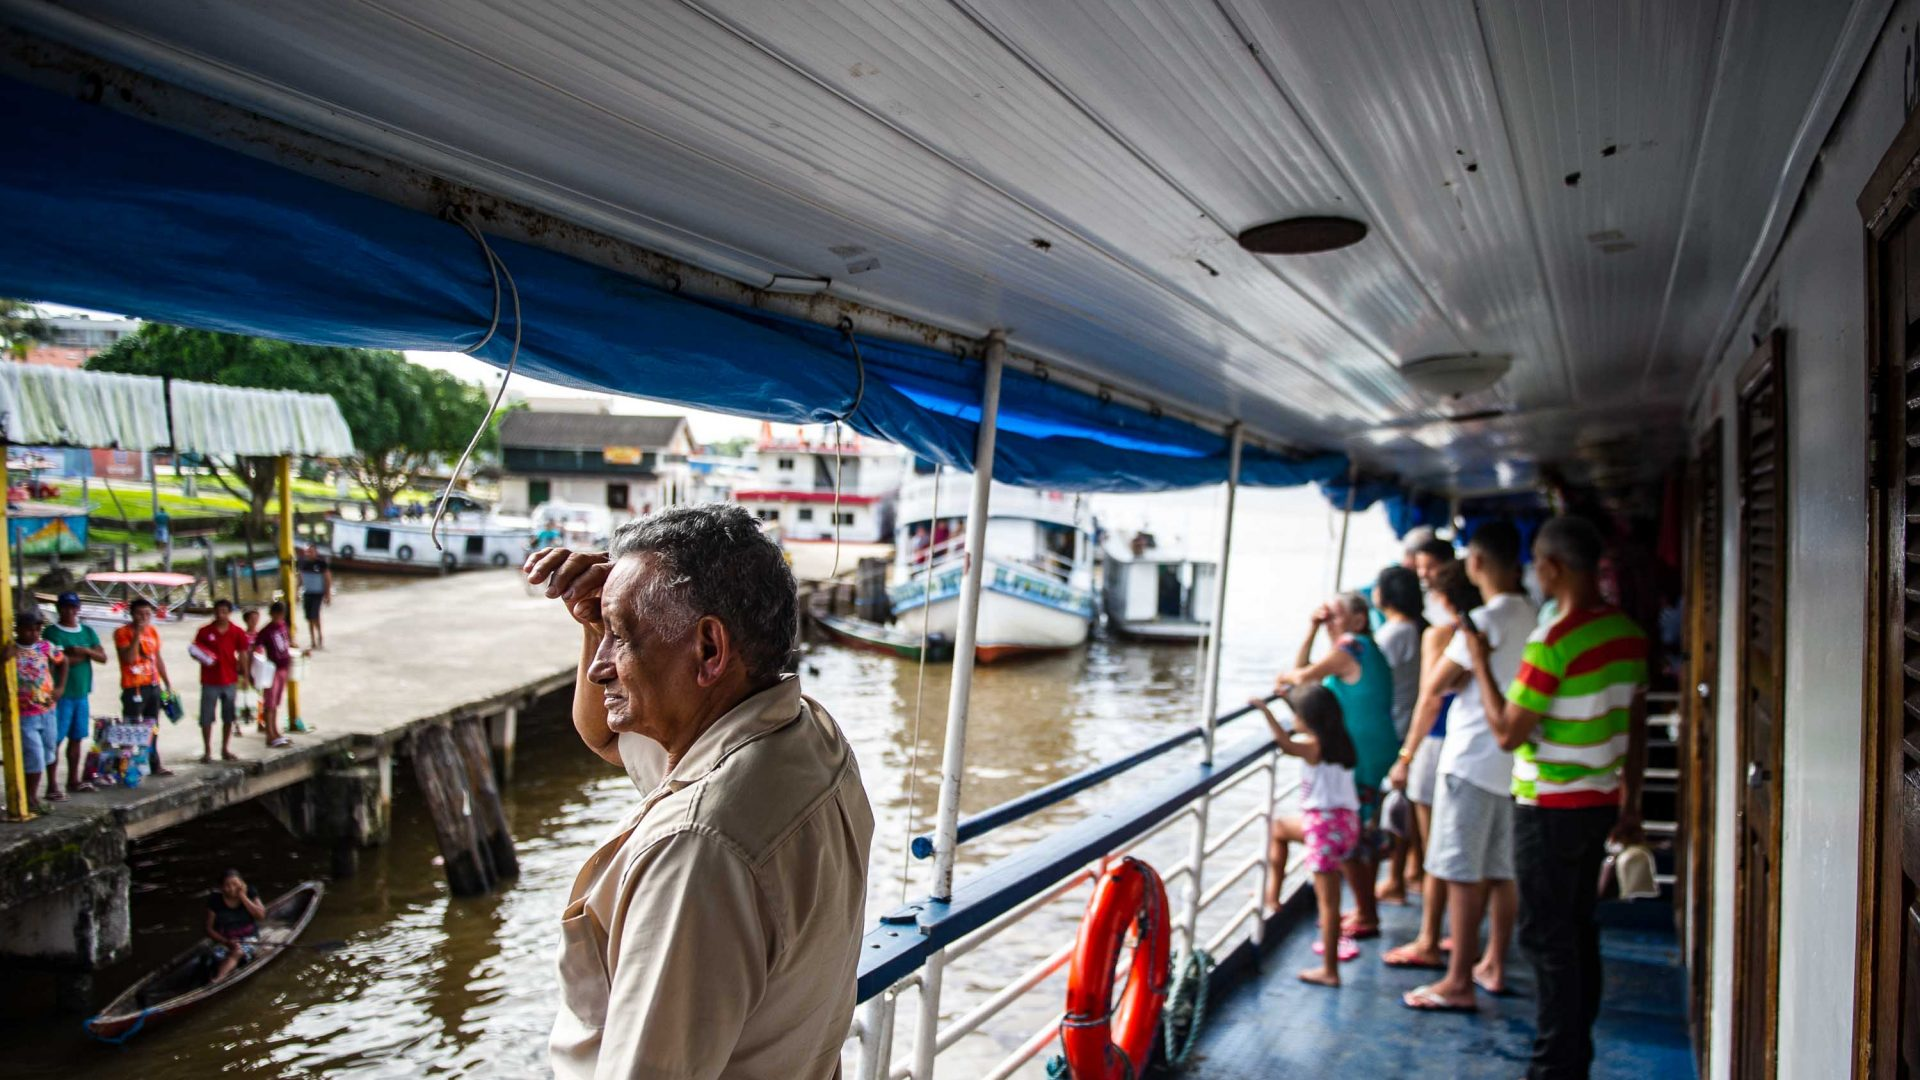 A passenger looks out as the Cisne Branco riverboat arrives at a port.